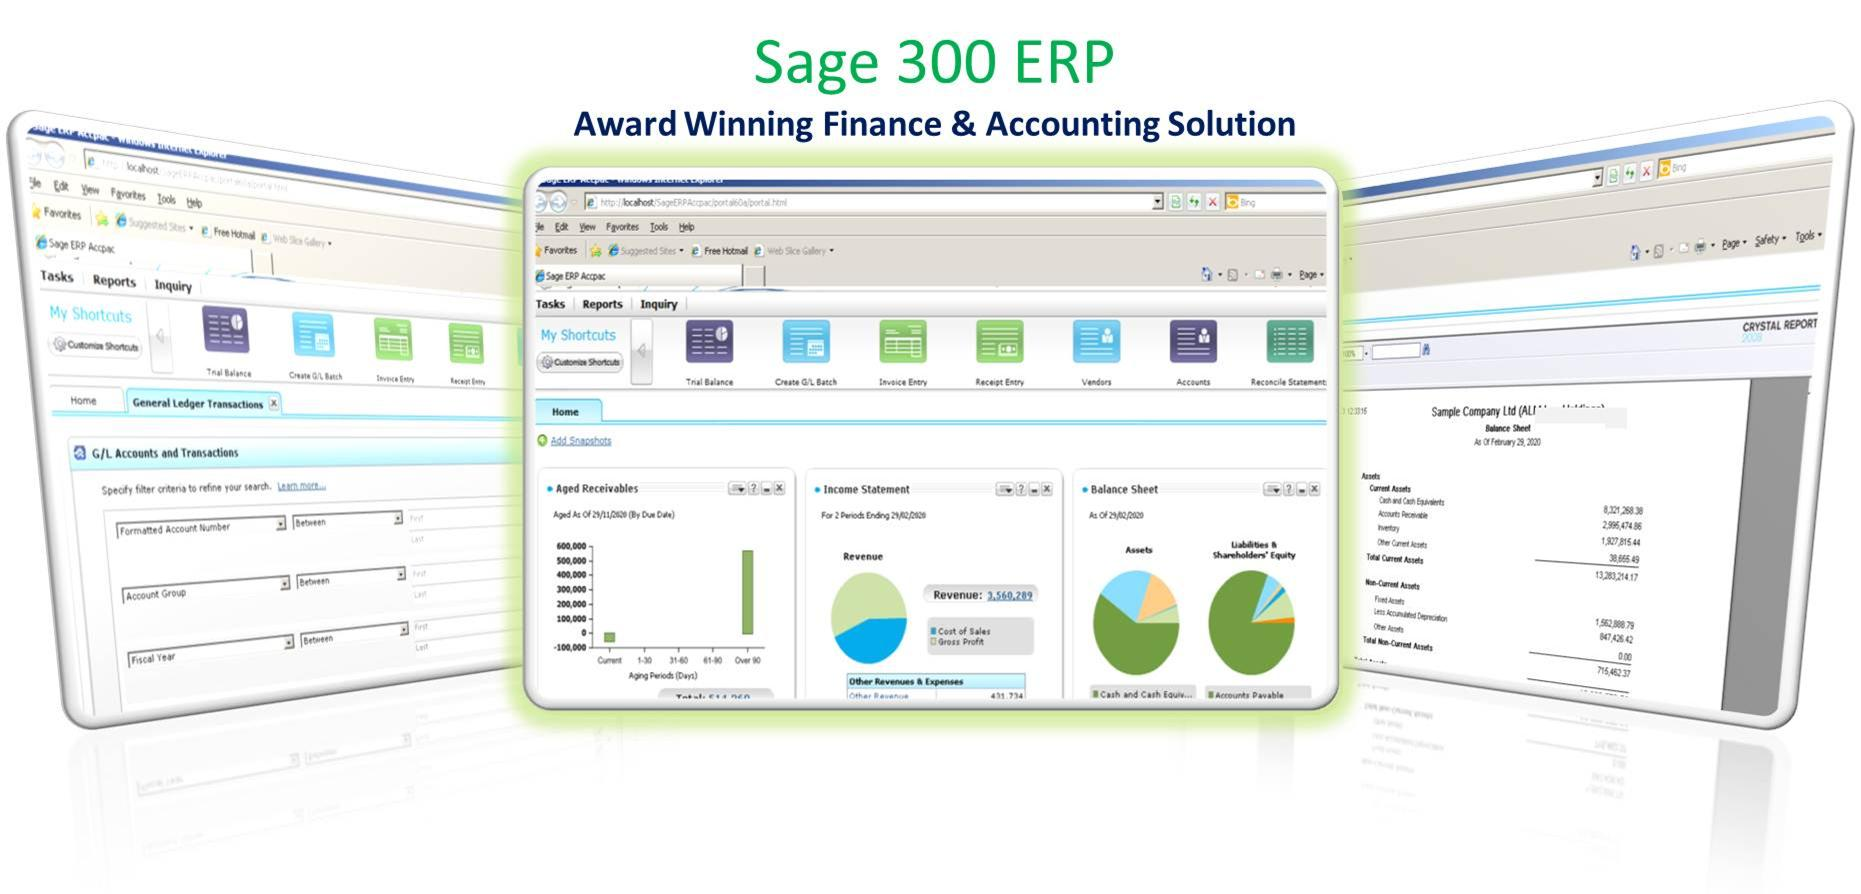 Sage 300 ERP Online Review & Price List | AccountingSoftware